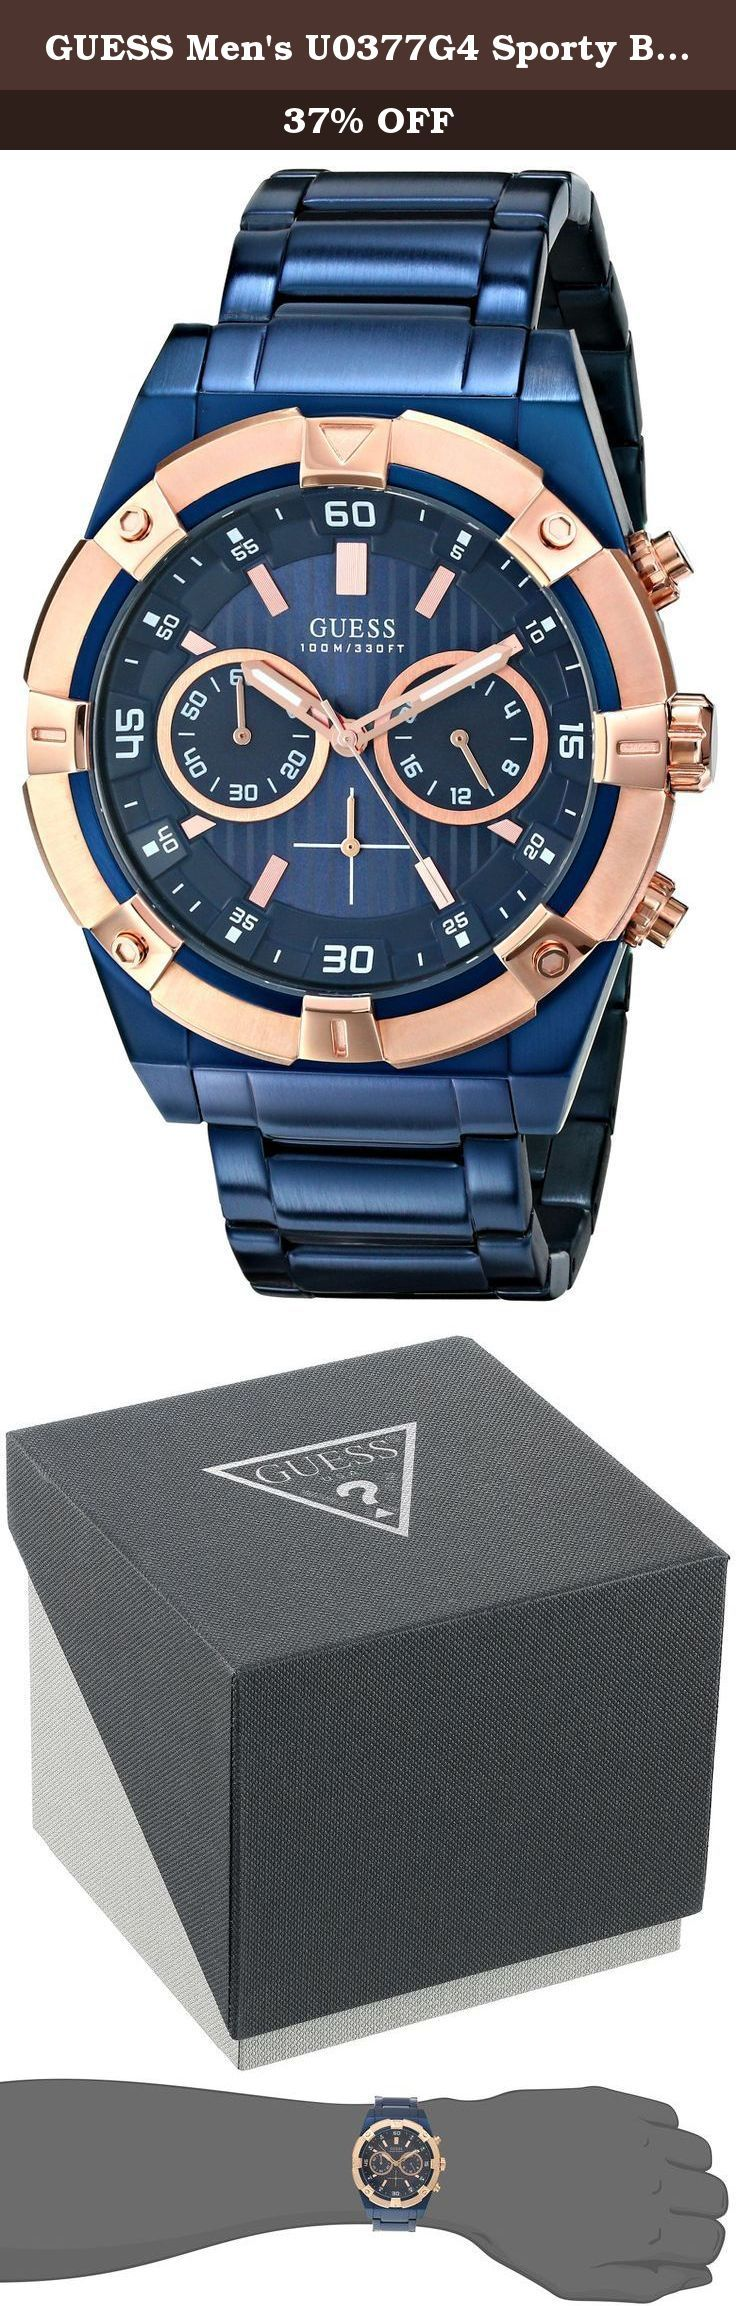 GUESS Men's U0377G4 Sporty Blue Stainless Steel Multi-Function Watch with Chronograph Dial and Deployment Buckle. Define your time with a stylish Men's GUESS Watch that's Perfect for Women too! Japanese Quartz Movement Case diameter: 44 mm Chronograph Watch with Date to keep help you keep track of the days Durable mineral crystal protects watch from scratches Water resistant to 330 feet (100 M) 24 hour Intl time.